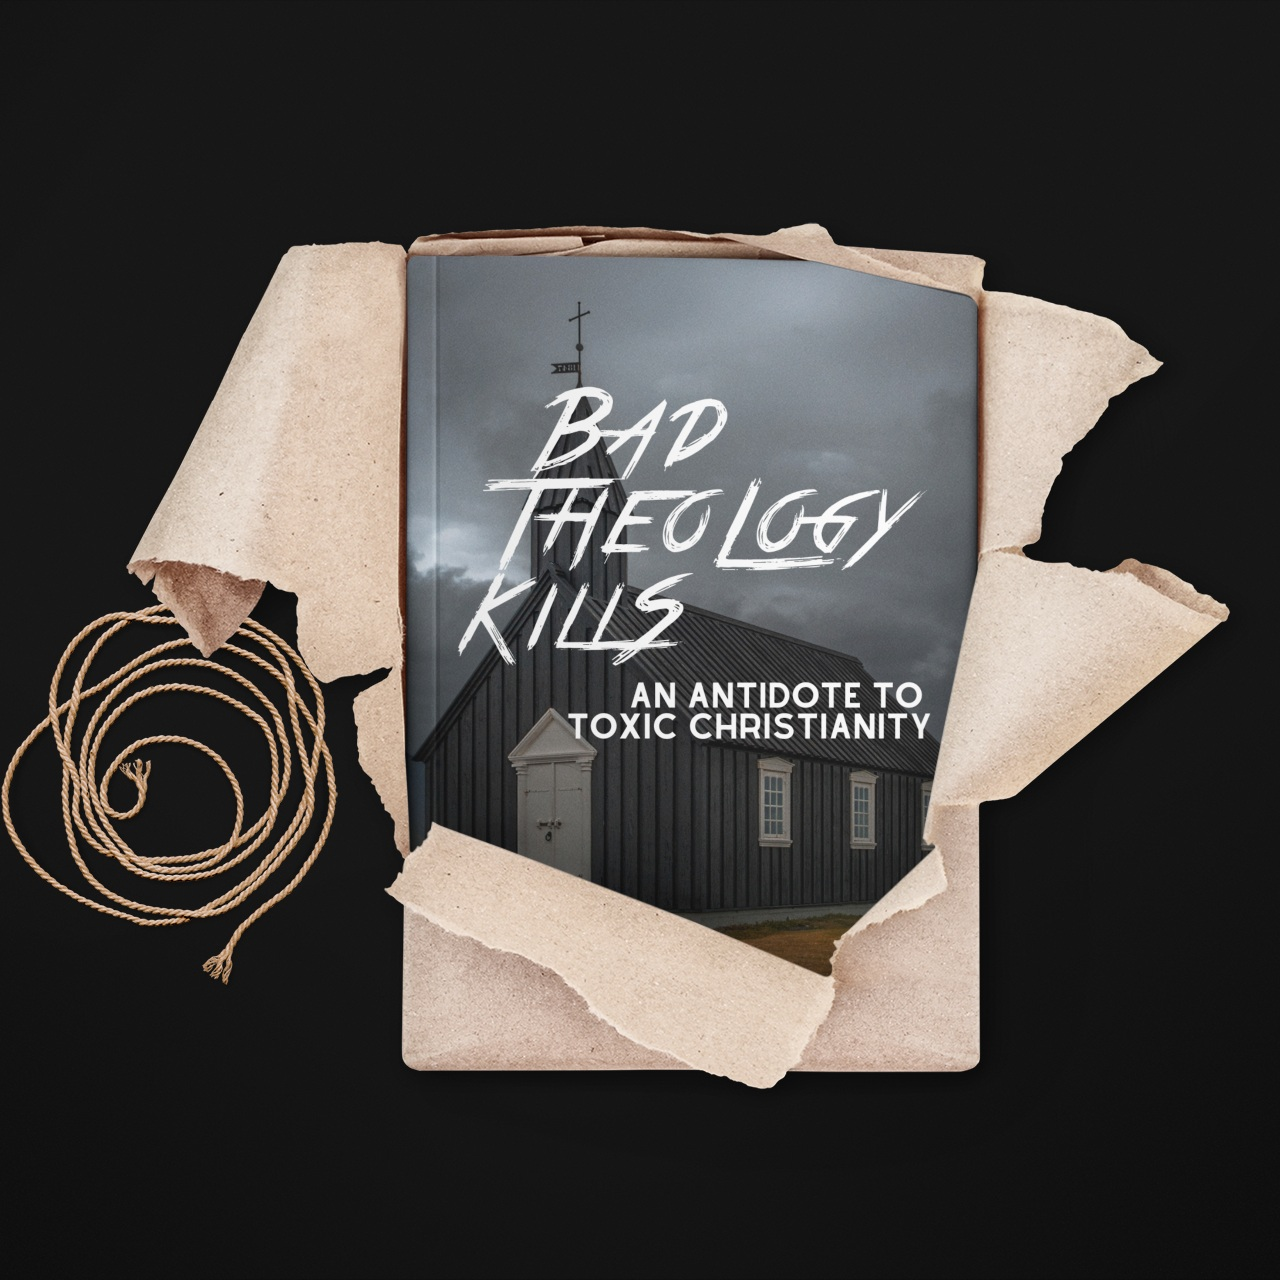 Bad Theology Kills: an antidote to Toxic ChristianityComing December 2019 - Sign up for my mailing list below to be the first to know about pre-sales, book tour, and all that good shit.